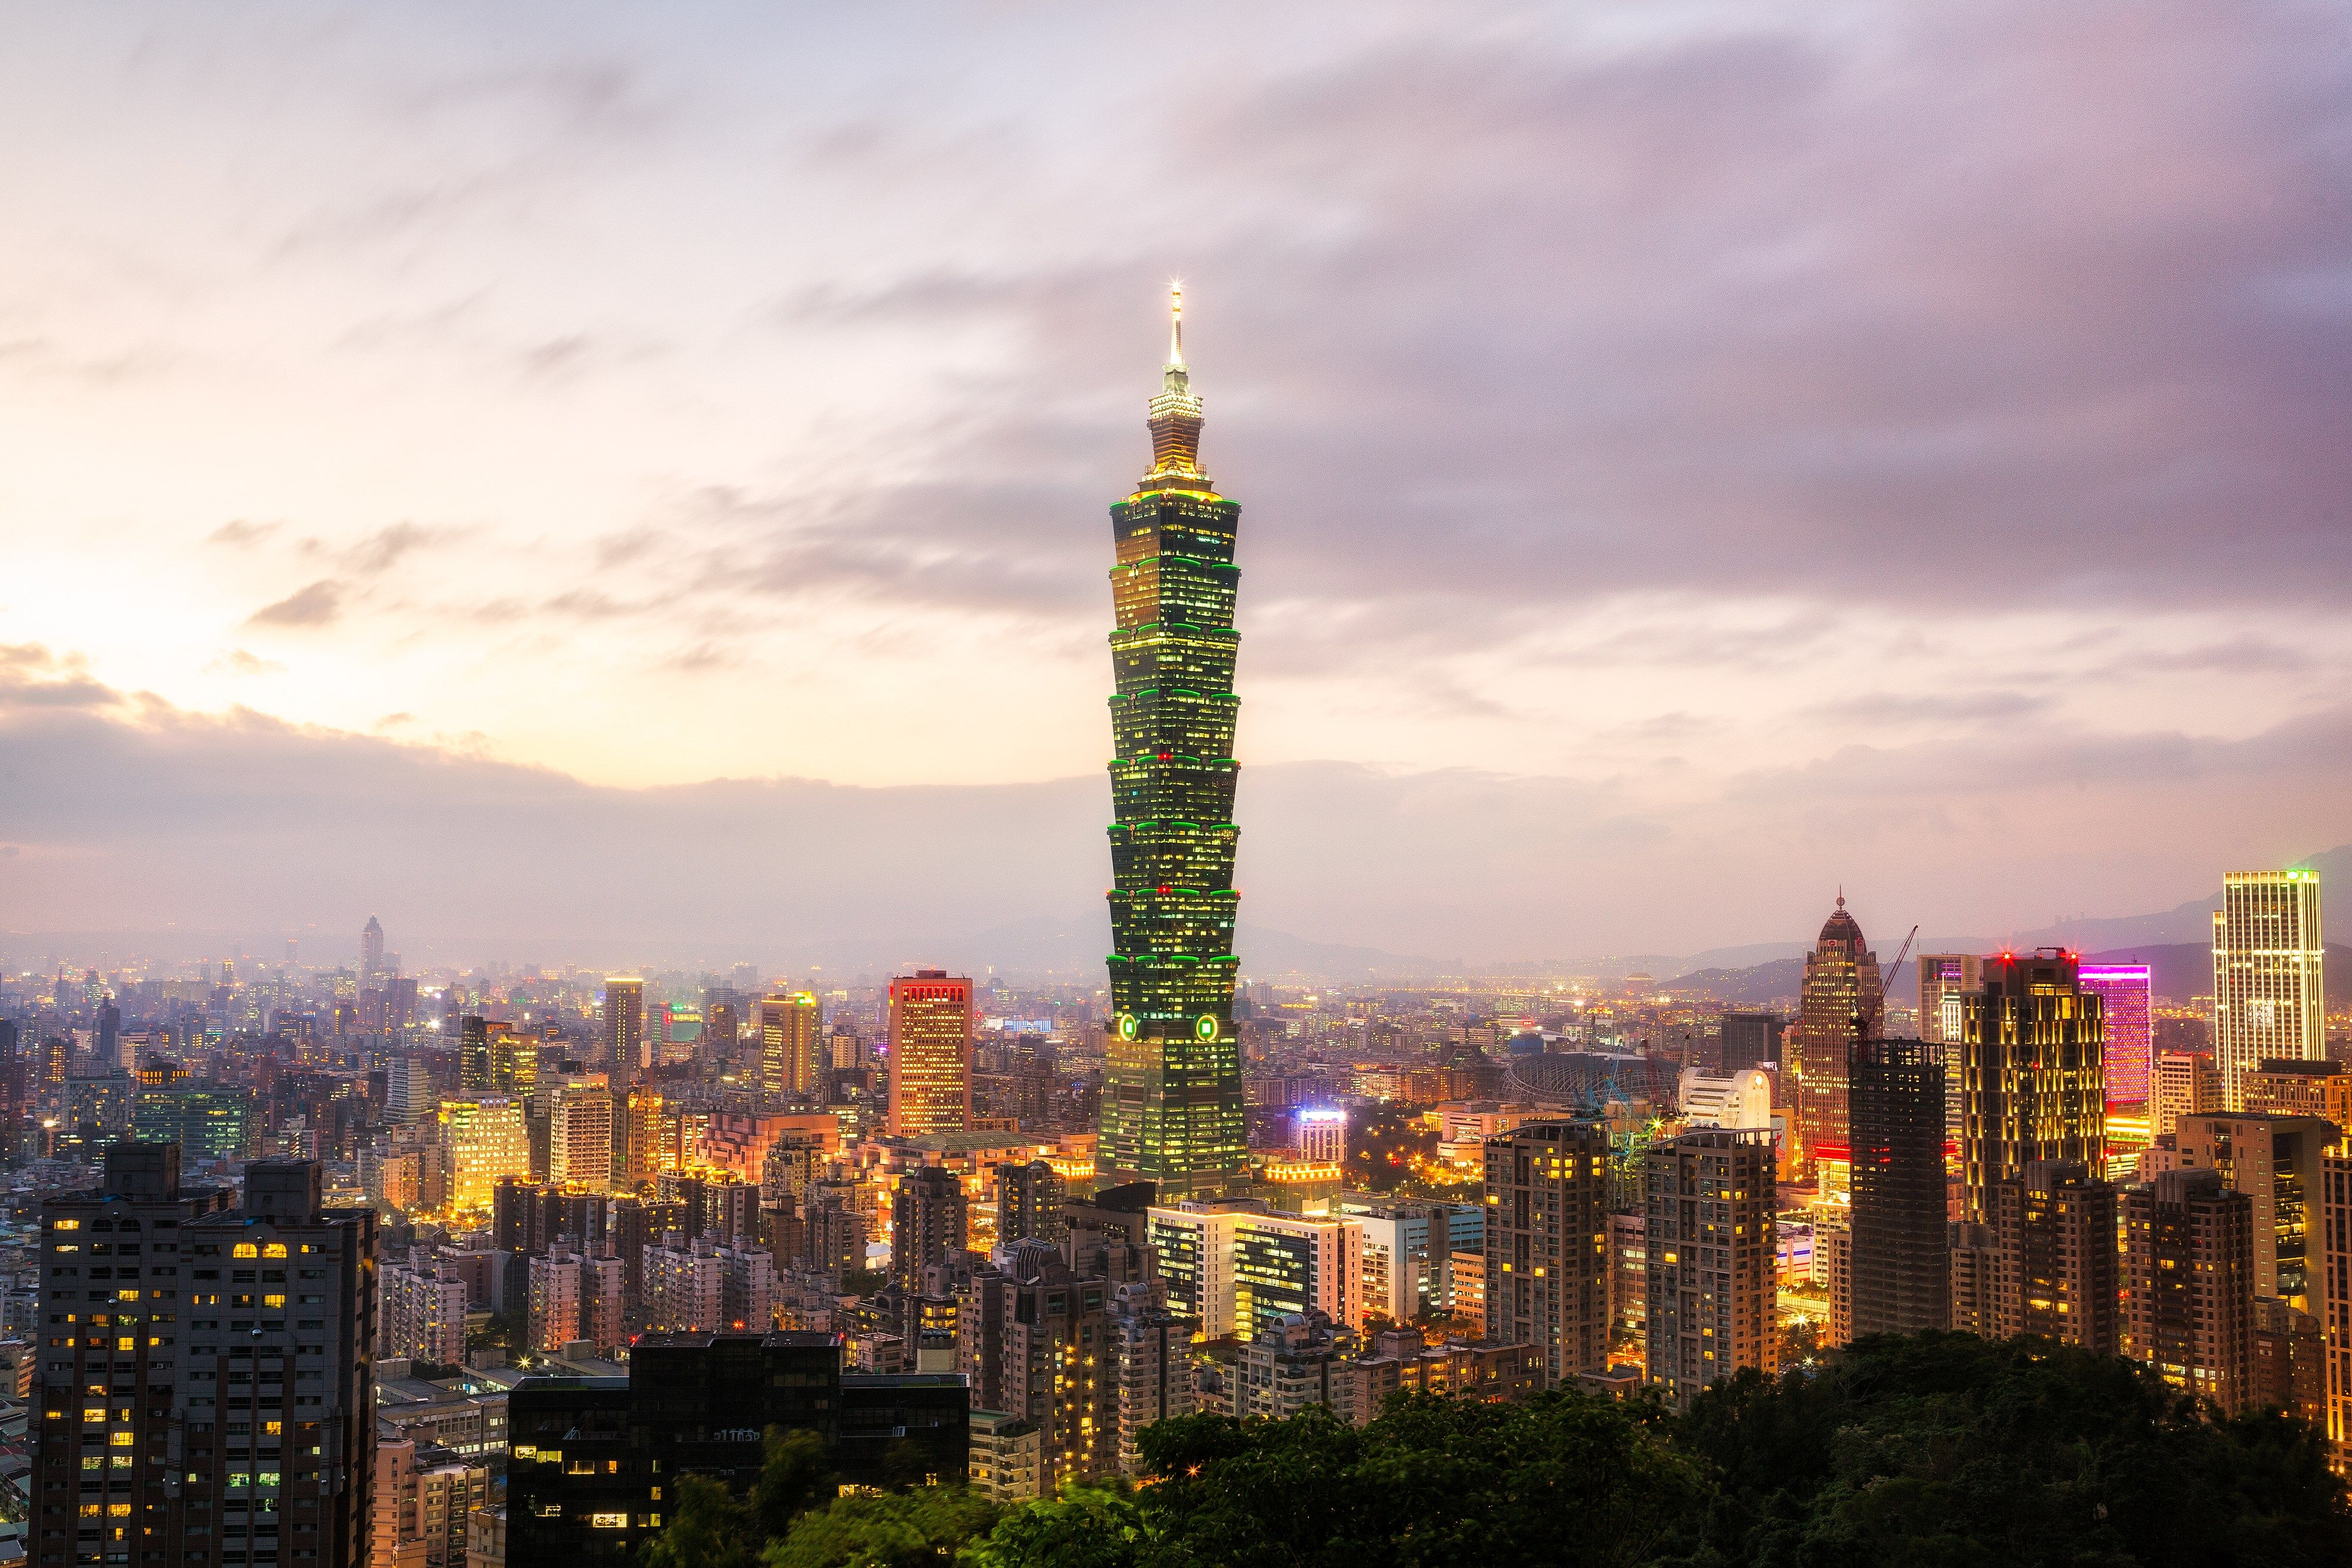 4k taipei 101 hd wallpaper (4000x2667) | pinterest | taipei 101 and